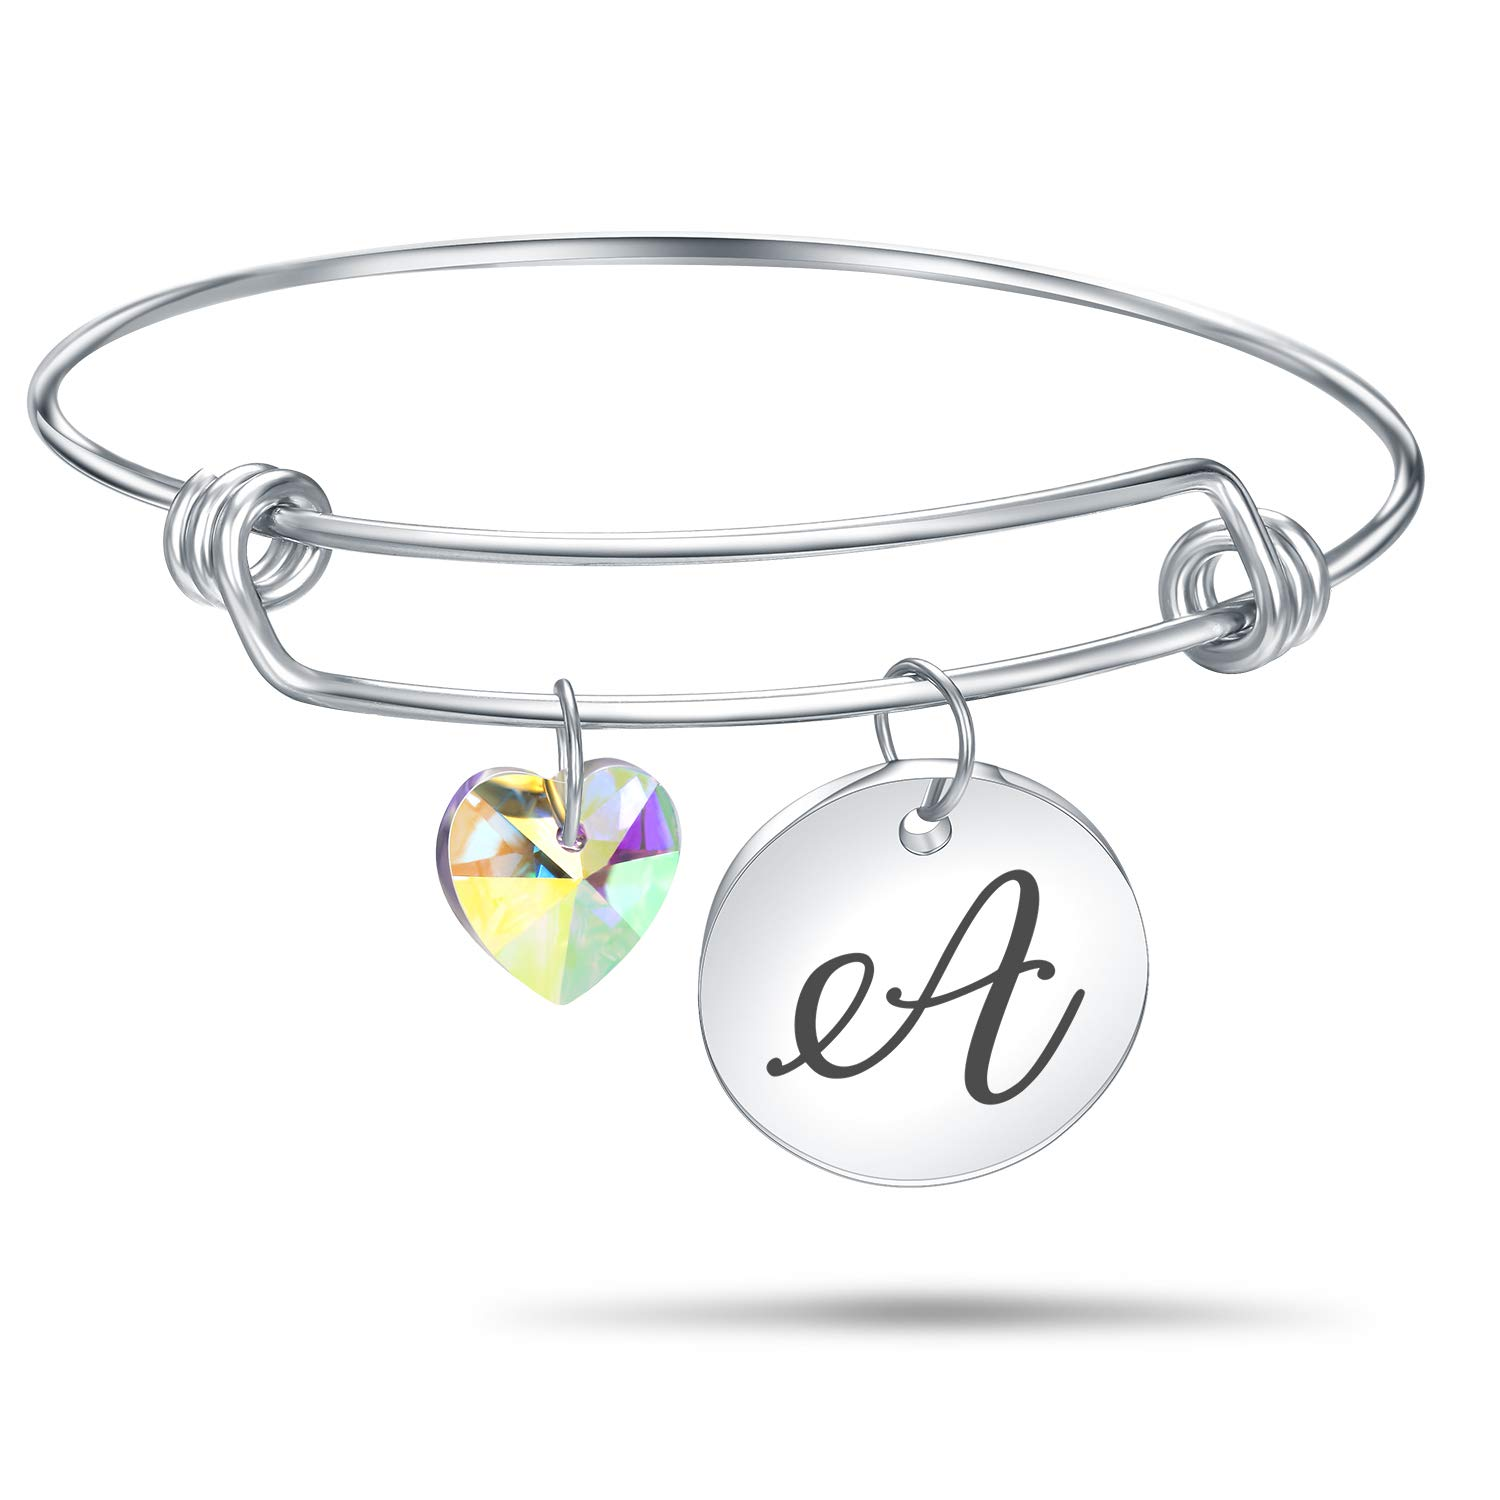 94edf1f6278 Amazon.com  4MEMORYS Initial Alphabet Bracelet Letter Engraved Stainless  Steel Material with Heart Crystal Personalized Charm Bangel Jewelry  (A-Silver)  ...